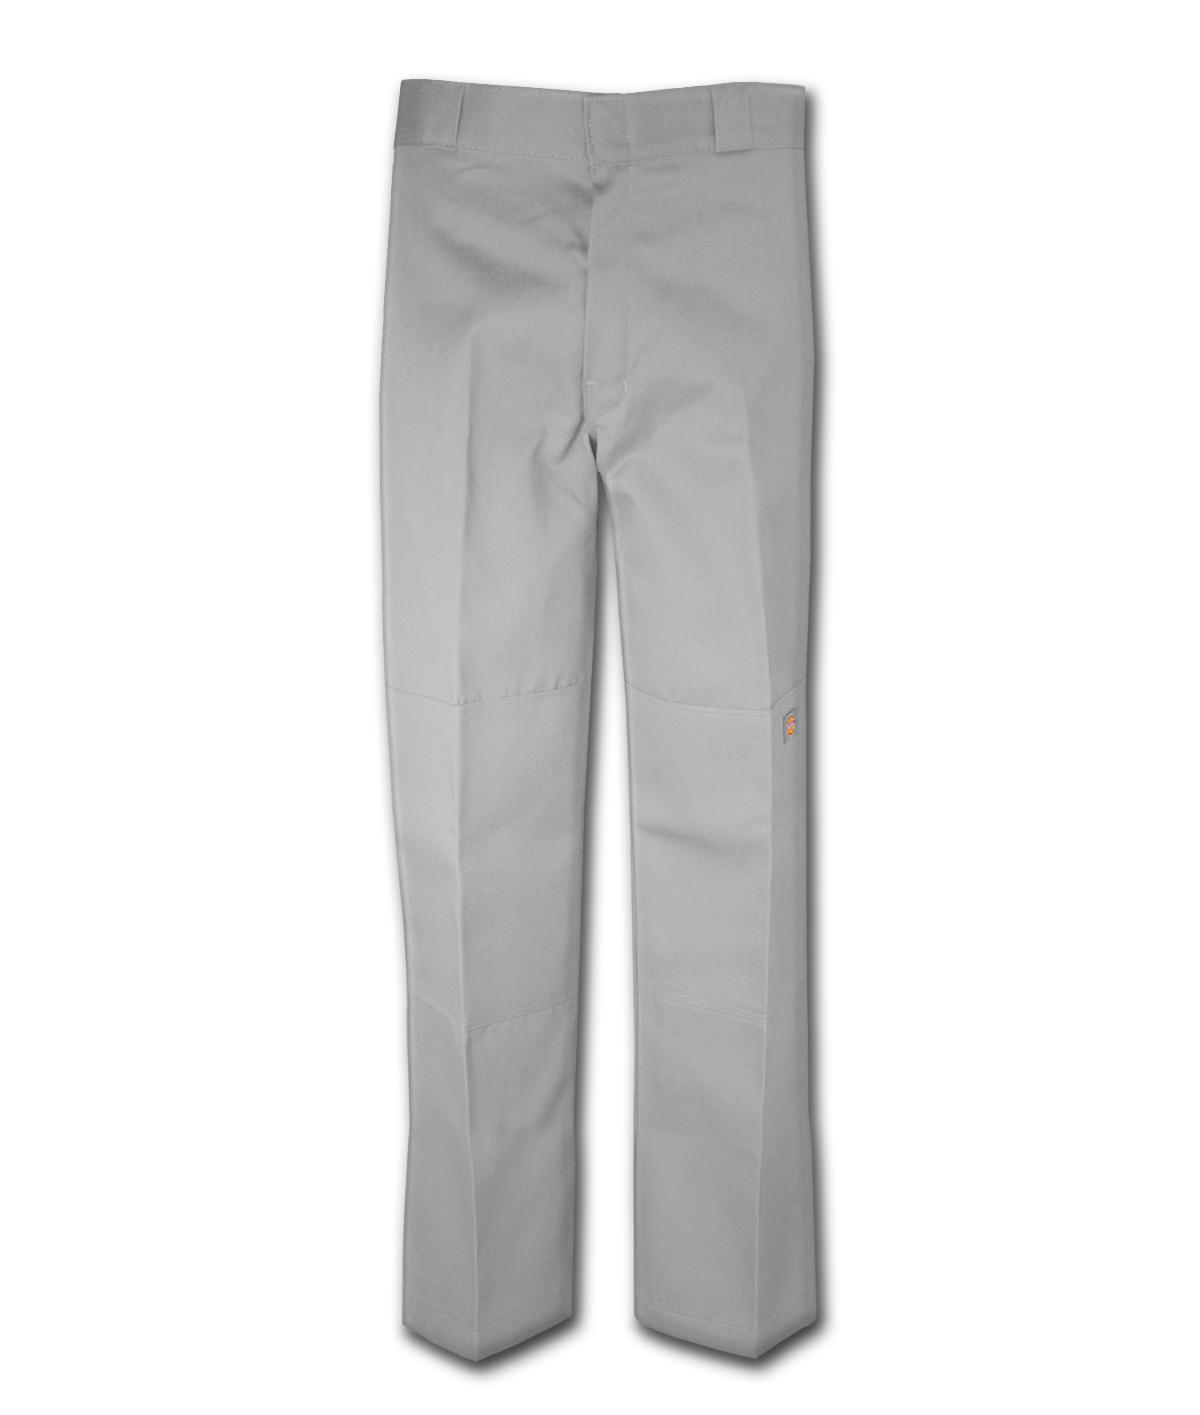 FINAL SALE Dickies Men/'s Loose Fit Double Knee Work Pant 85283SV Silver